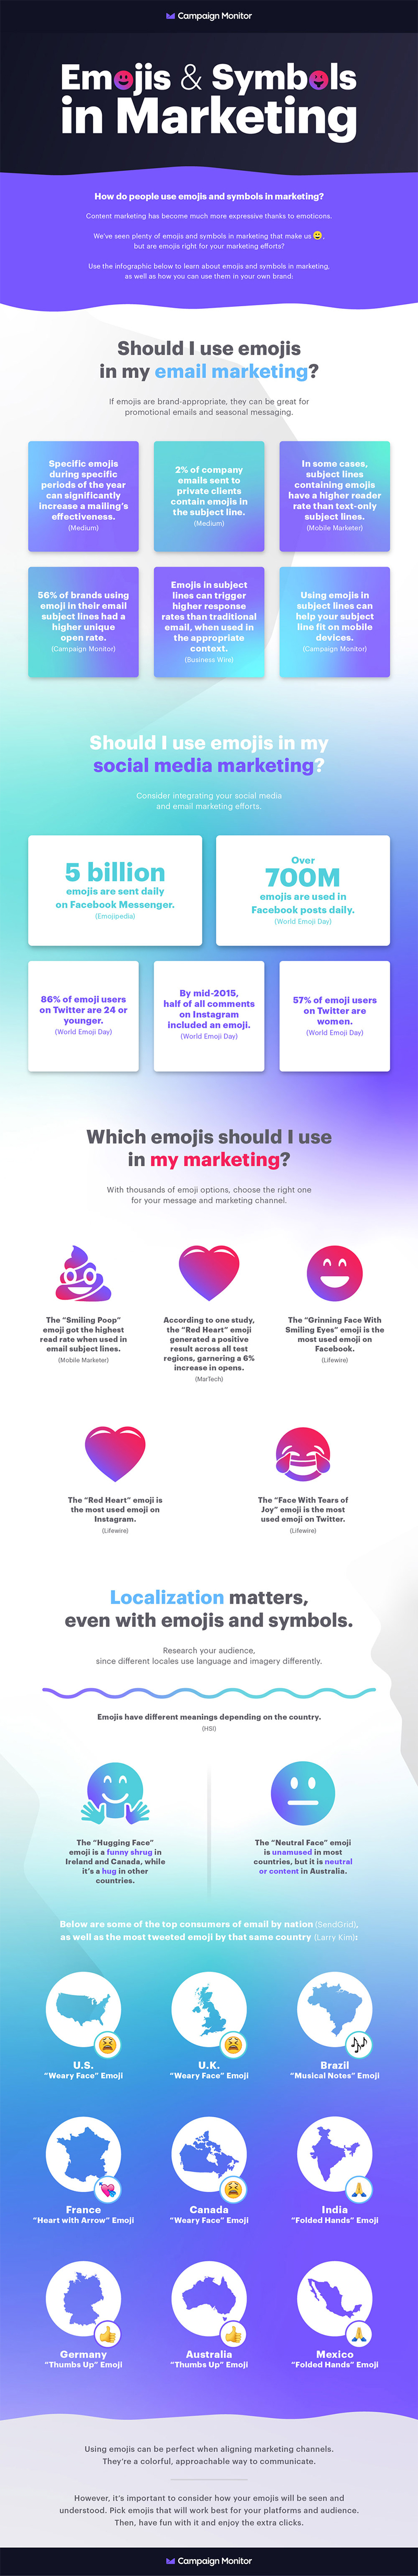 How to Use Emojis and Symbols to Improve Your Marketing Strategy [Infographic]